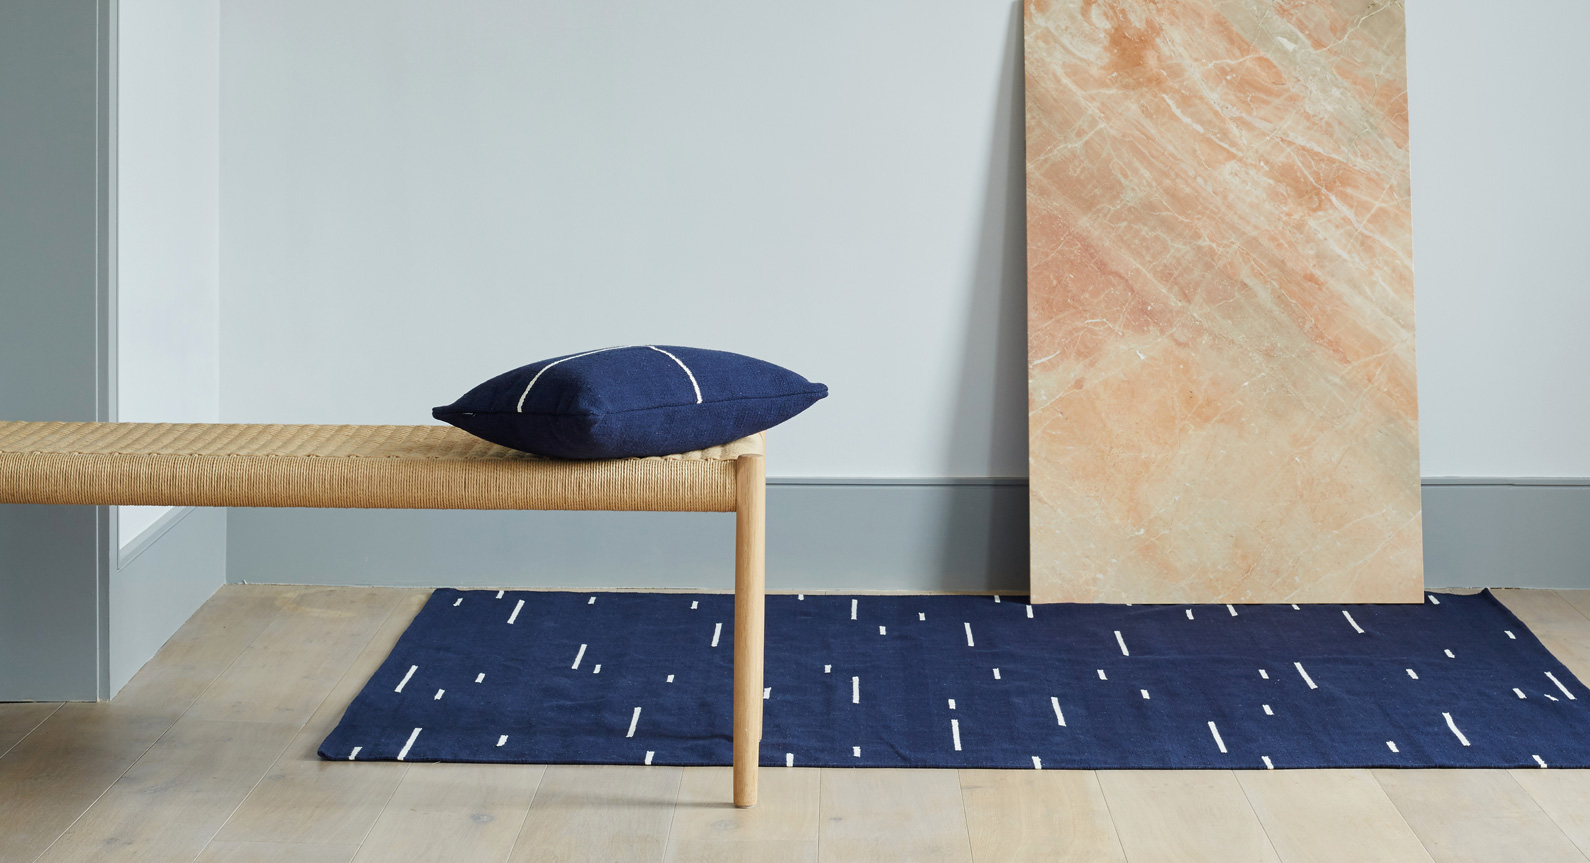 Introducing Tiipoi: The British Homeware Brand That Is Rewriting The Rules Of Design